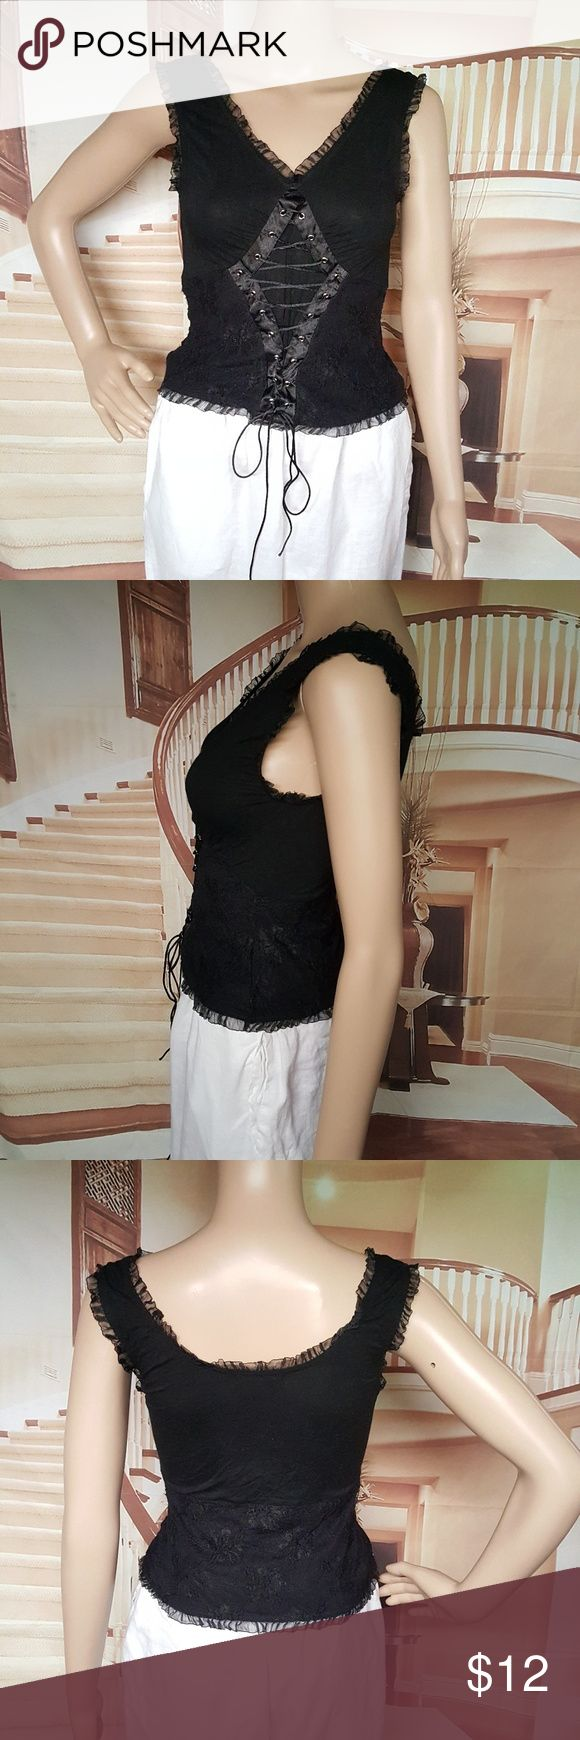 """Venus Cotton Black Corset Style Tank Top Sz M This is a beautiful cotton spandex blend sleeveless top. As you can see from the pictures it has a set on the corset. The sleeves are trimmed with a delicate lace. This is a snug fitting lightweight item and will make a beautiful addition to your summer wardrobe.  Length 19"""" Chest 28"""" Waist 26"""" Hips 30""""  Condition- There are no stains, tears, holes, loose strings, damage, defect venus Tops Tank Tops"""